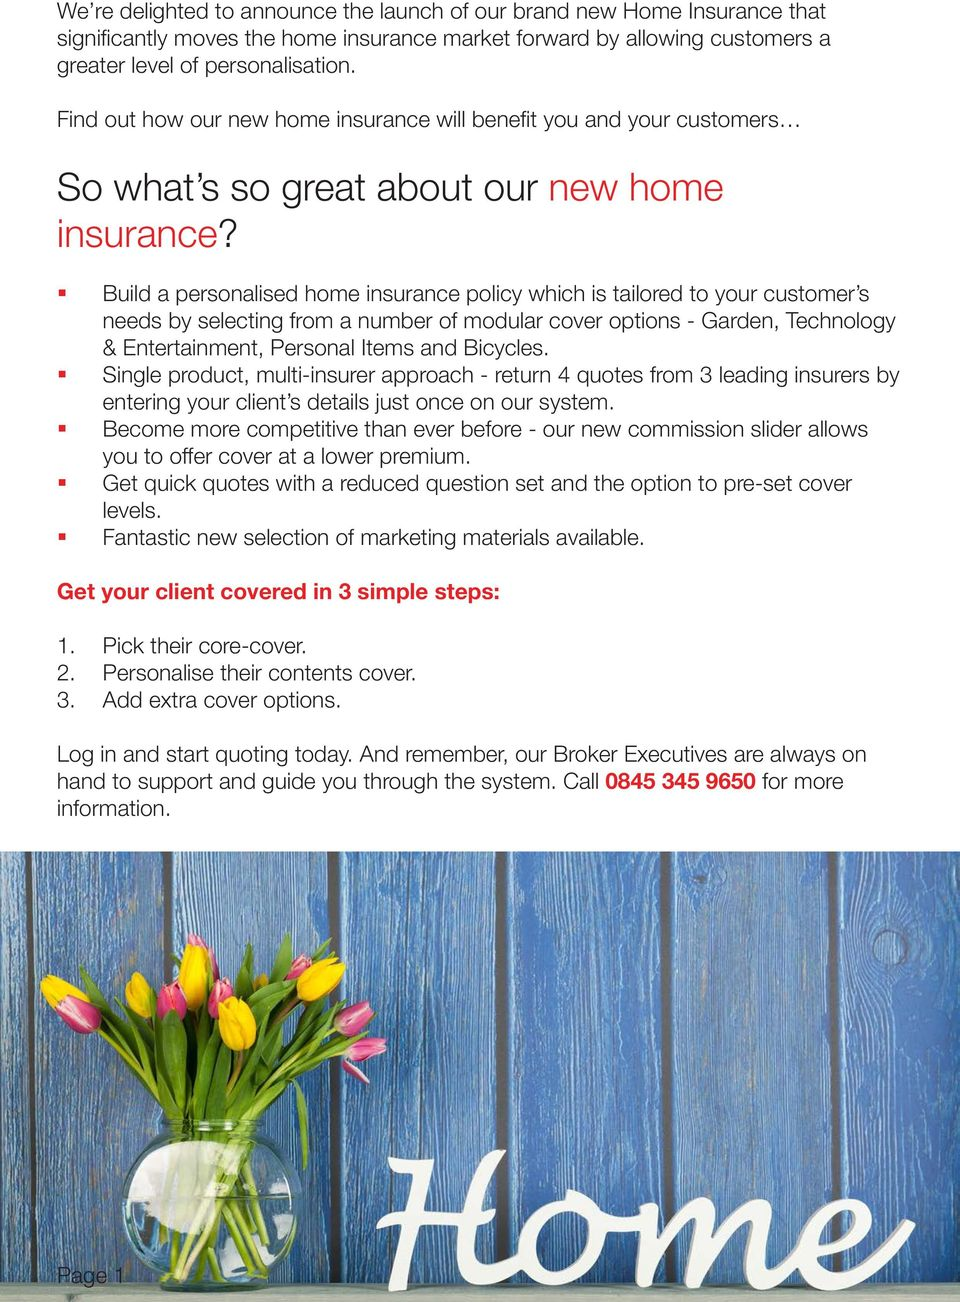 Build a personalised home insurance policy which is tailored to your customer s needs by selecting from a number of modular cover options - Garden, Technology & Entertainment, Personal Items and